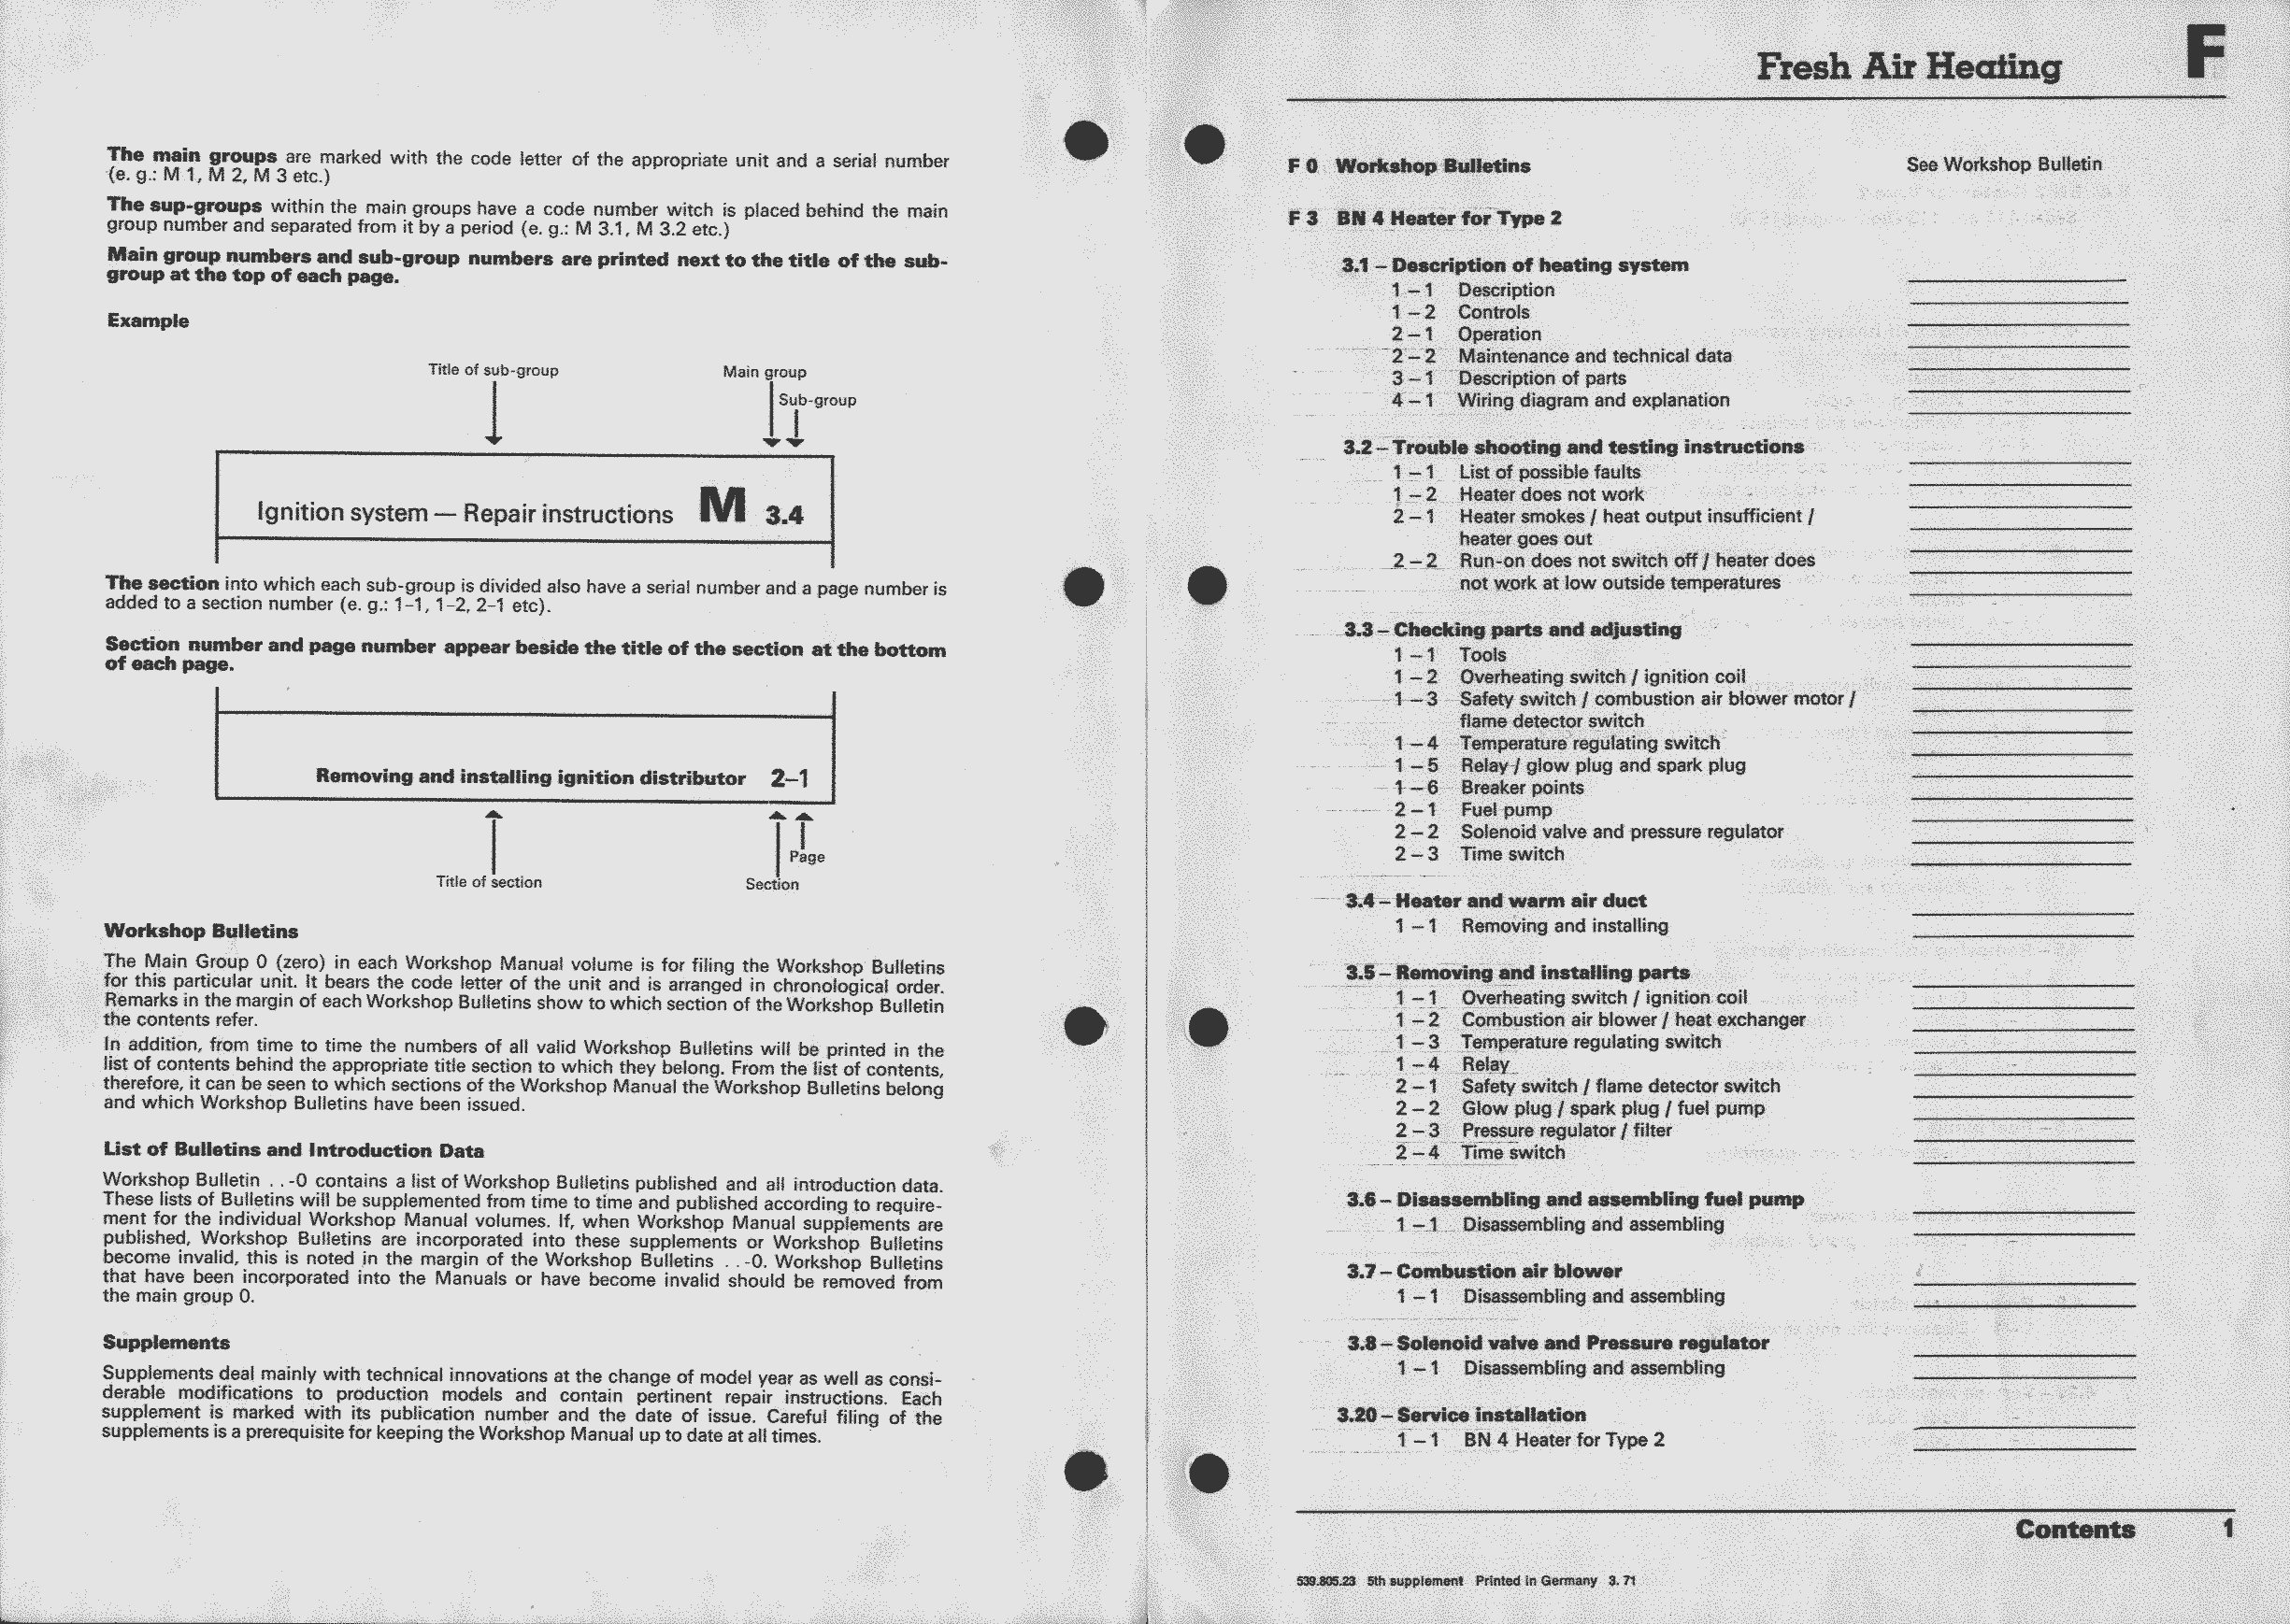 Obsolete Air Cooled Documentation Project Vw Workshop Manual Pressor Wiring Diagram 003 How To Use The Bn 4 Type 2 Index